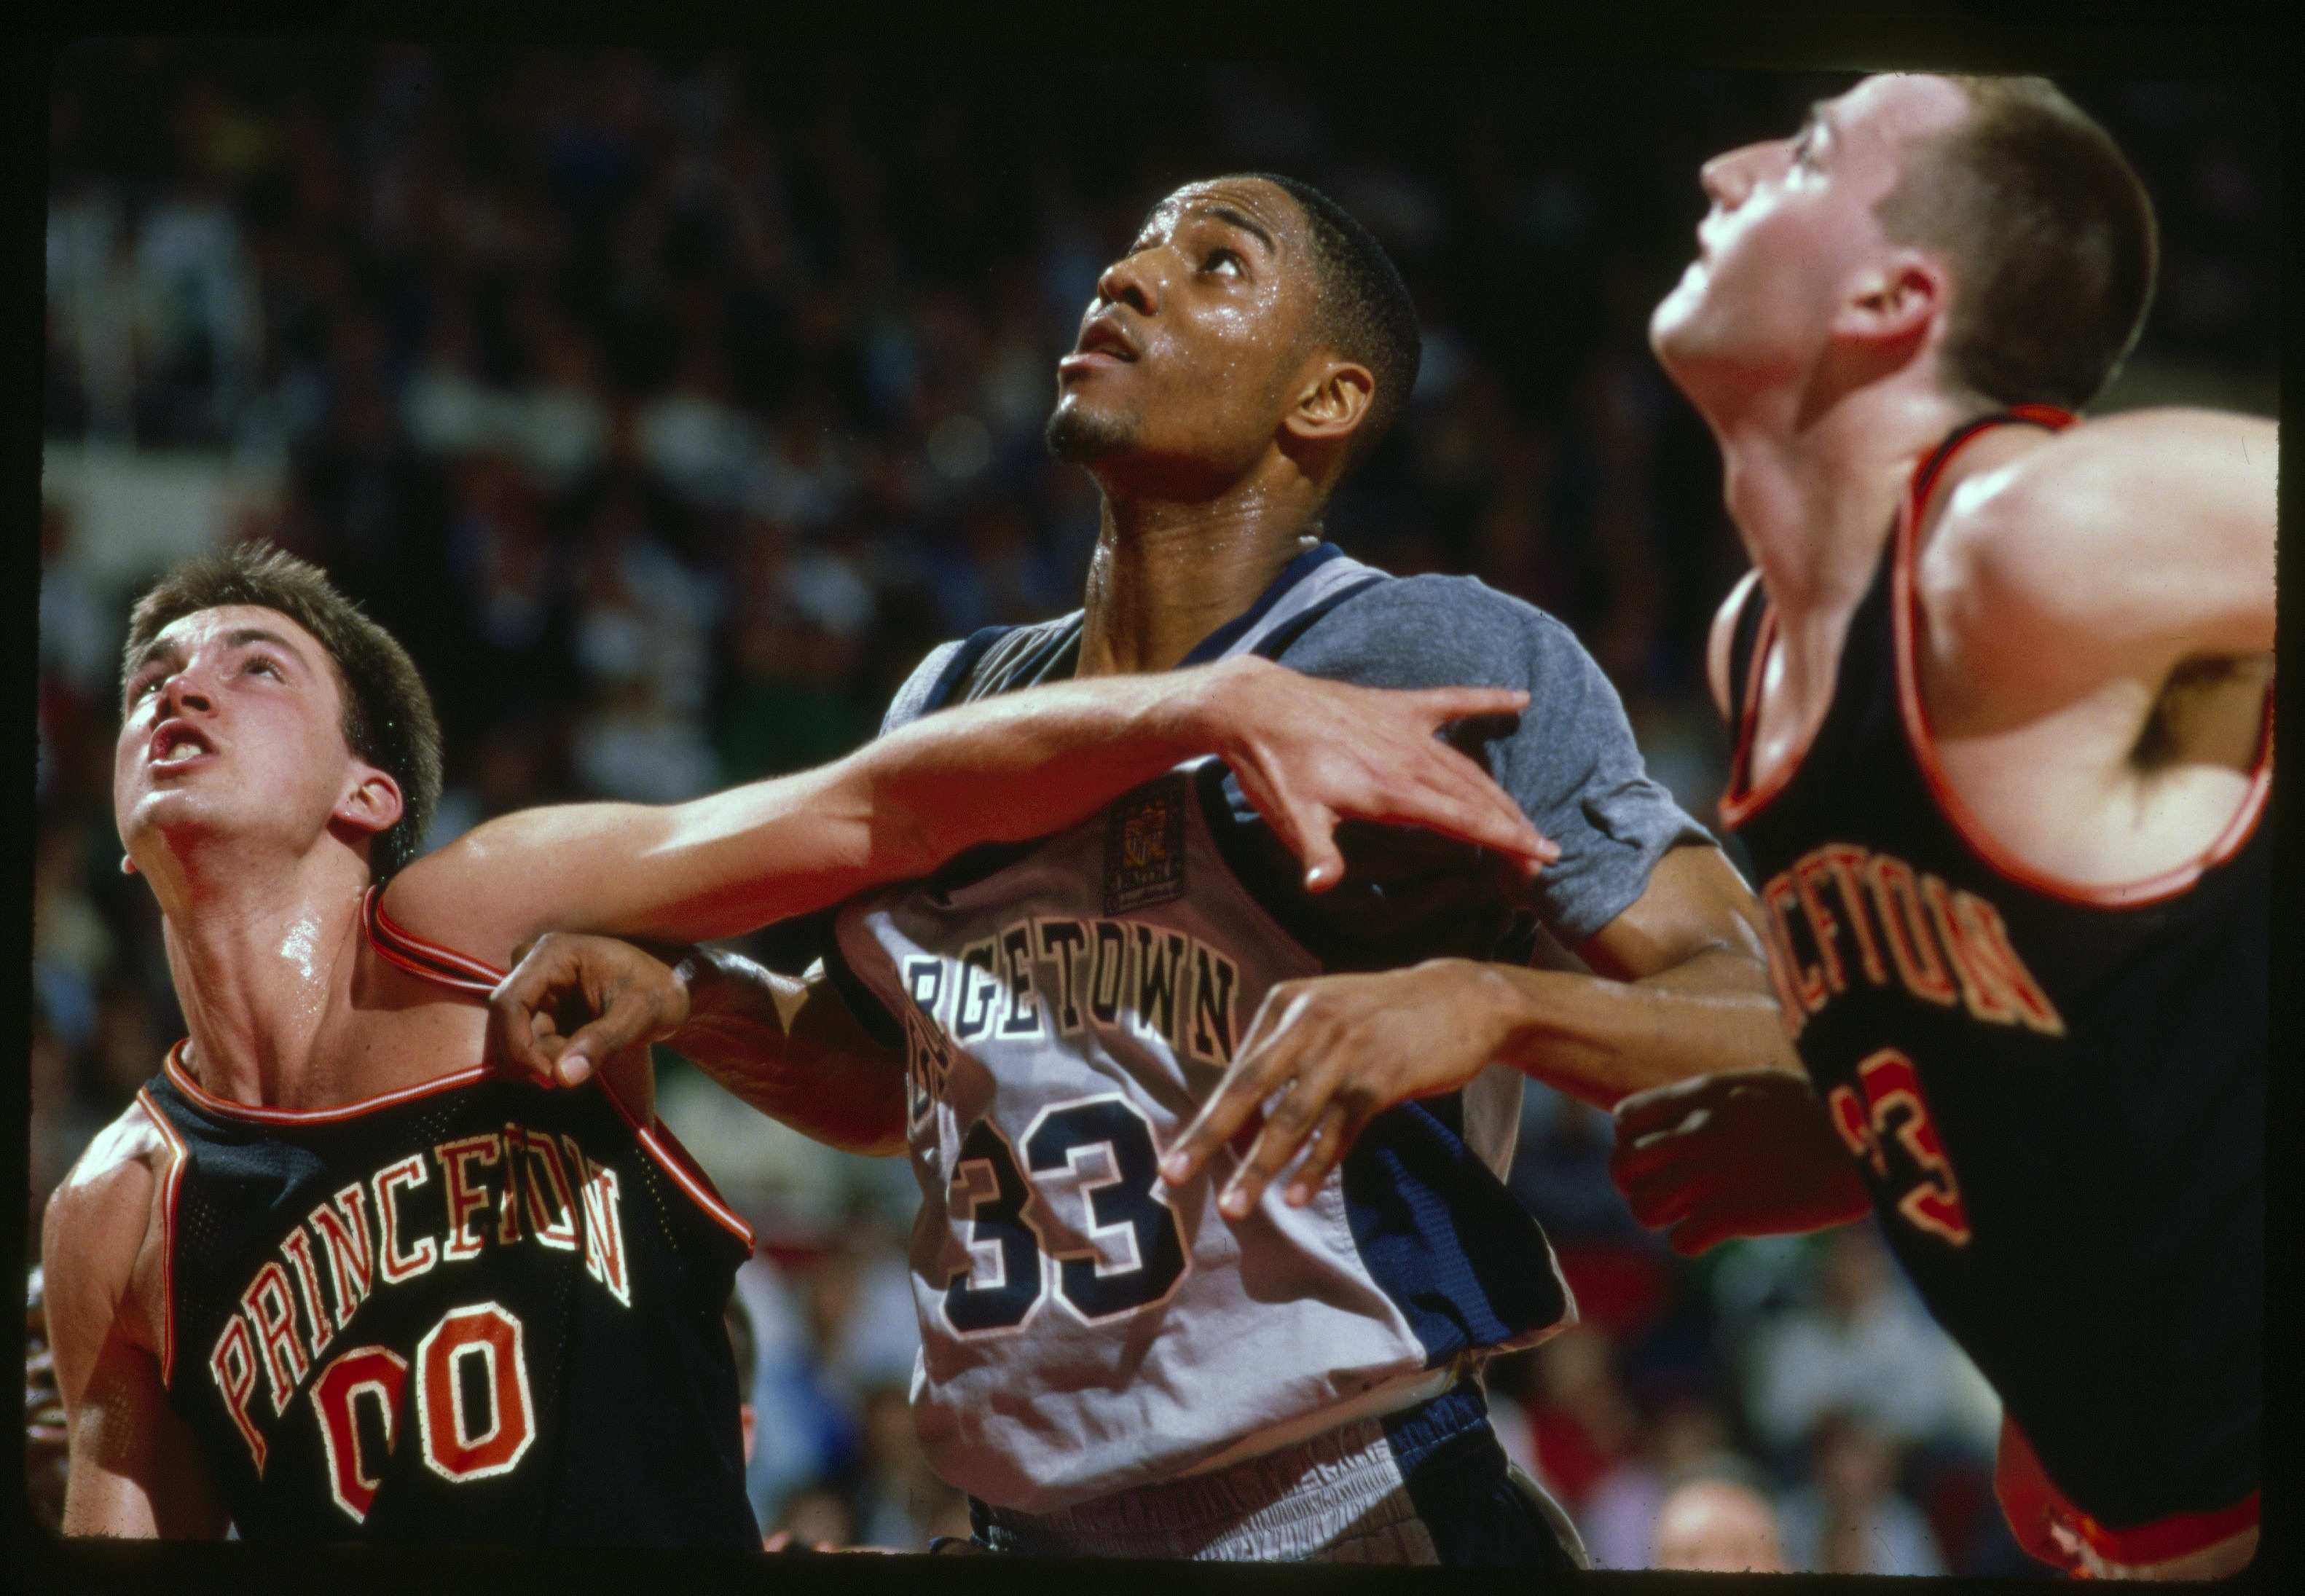 Georgetown's Alonzo Mourning (center) versus Princeton's Matt Lapin (33) and Kit Mueller (00) at Providence Civic Center, in Providence, R.I., on March 17, 1989.